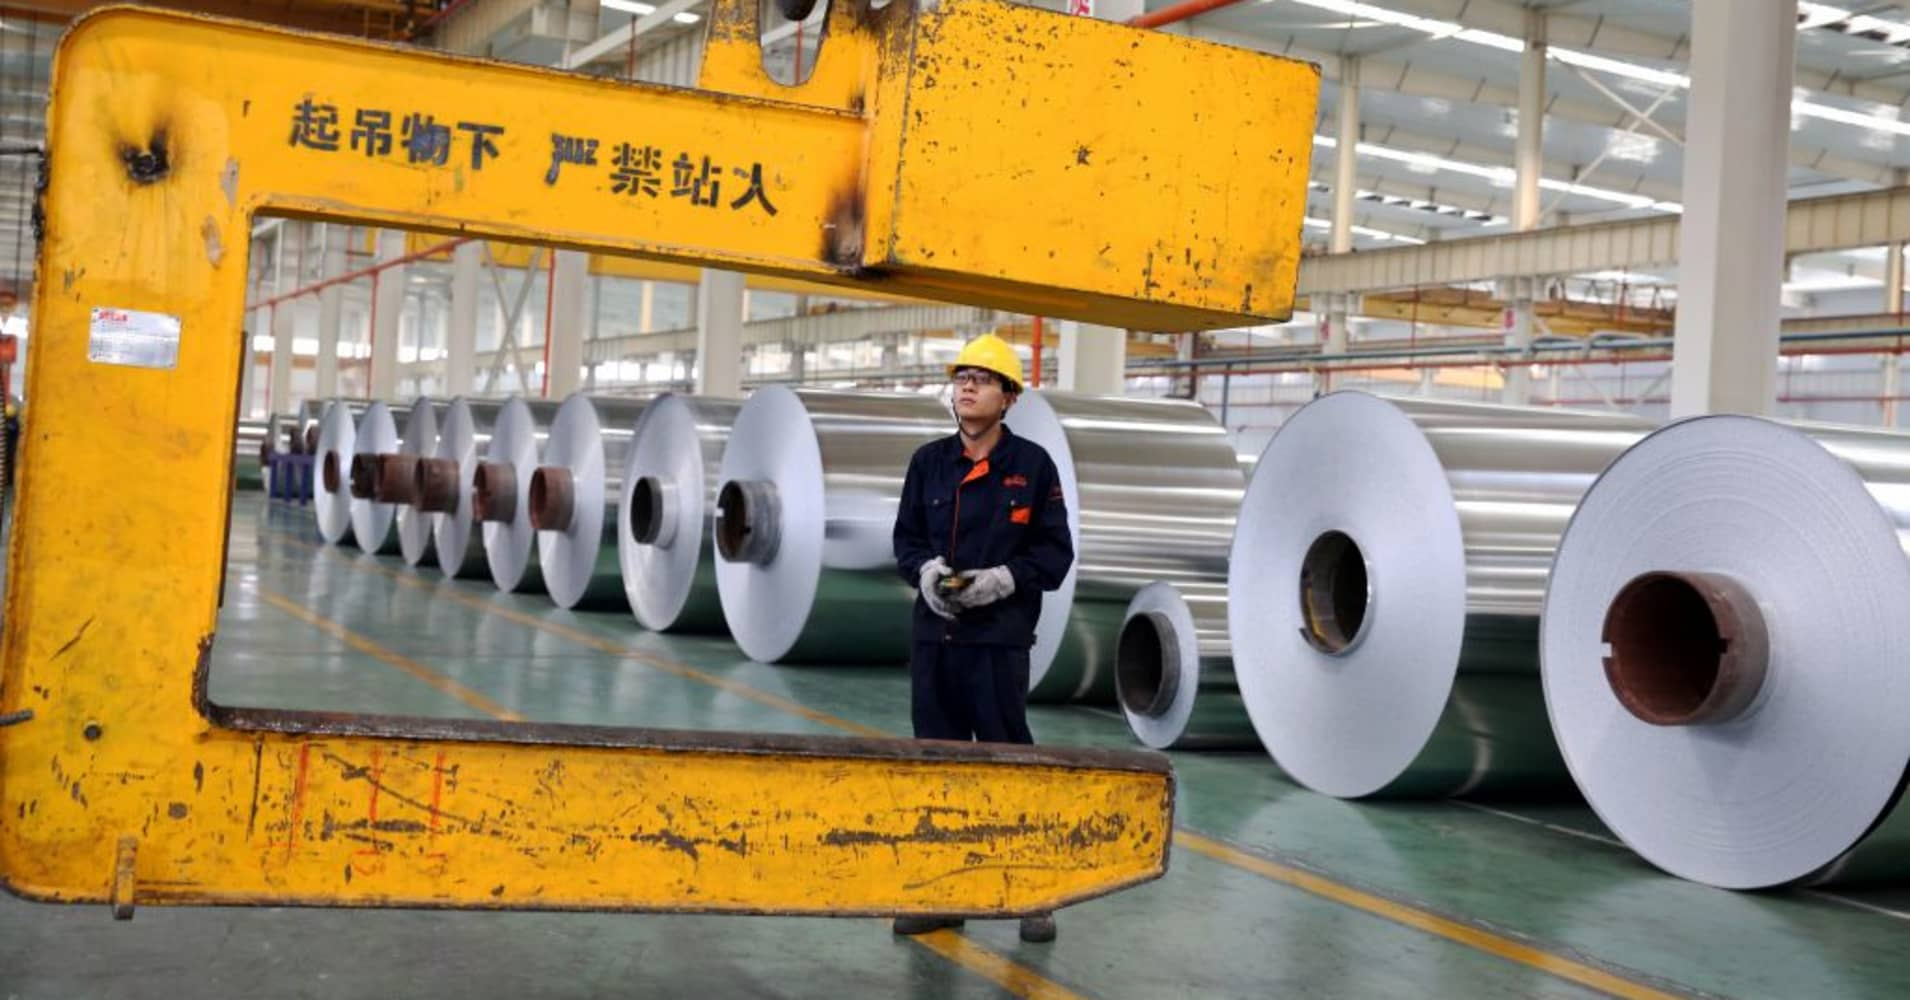 Live blog: China disappoints markets with weaker factory activity data